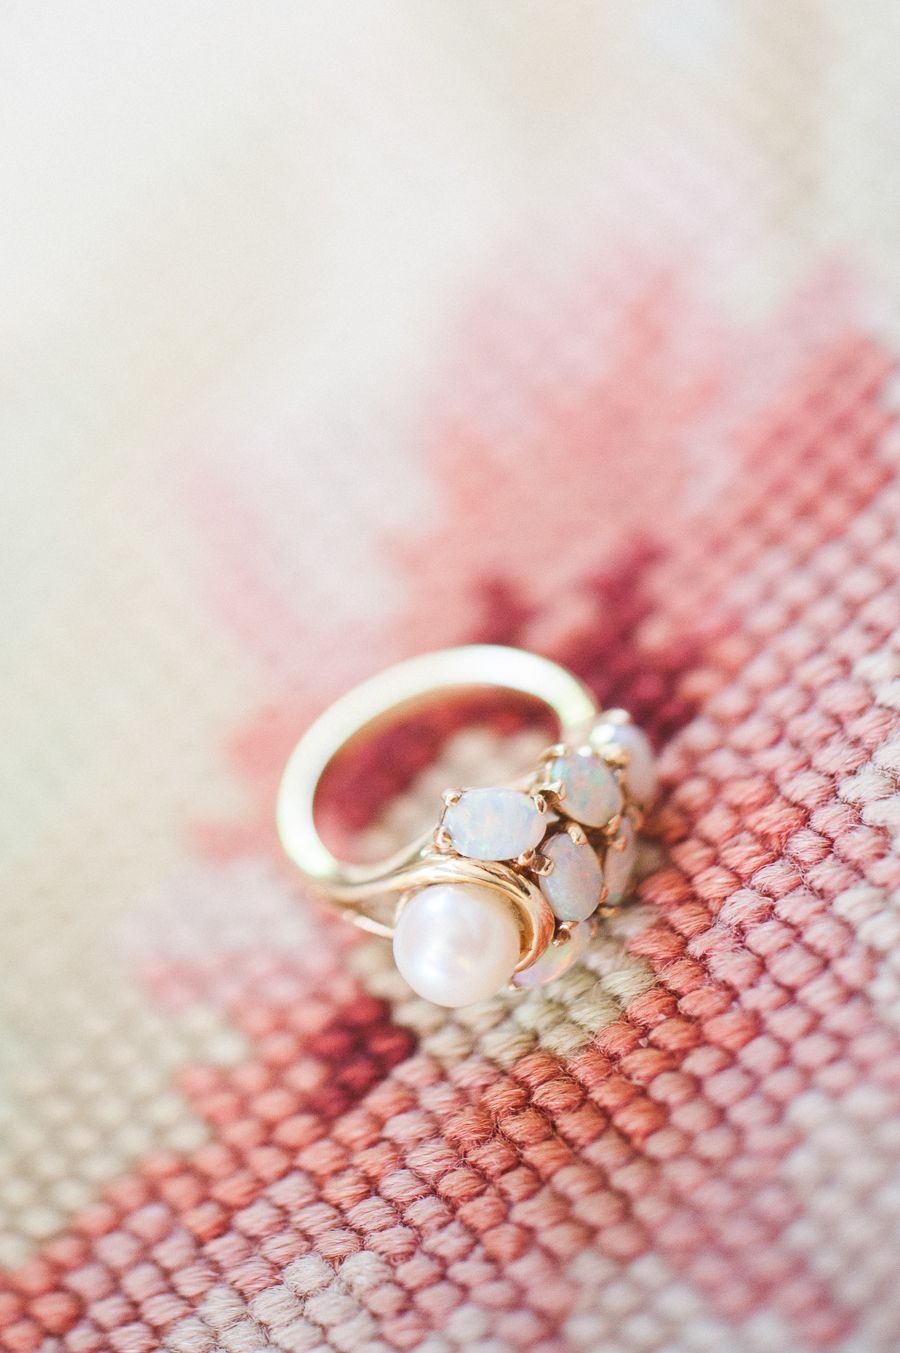 What Does Your Birthstone Say About You? | Romantic, Pearls and Ring